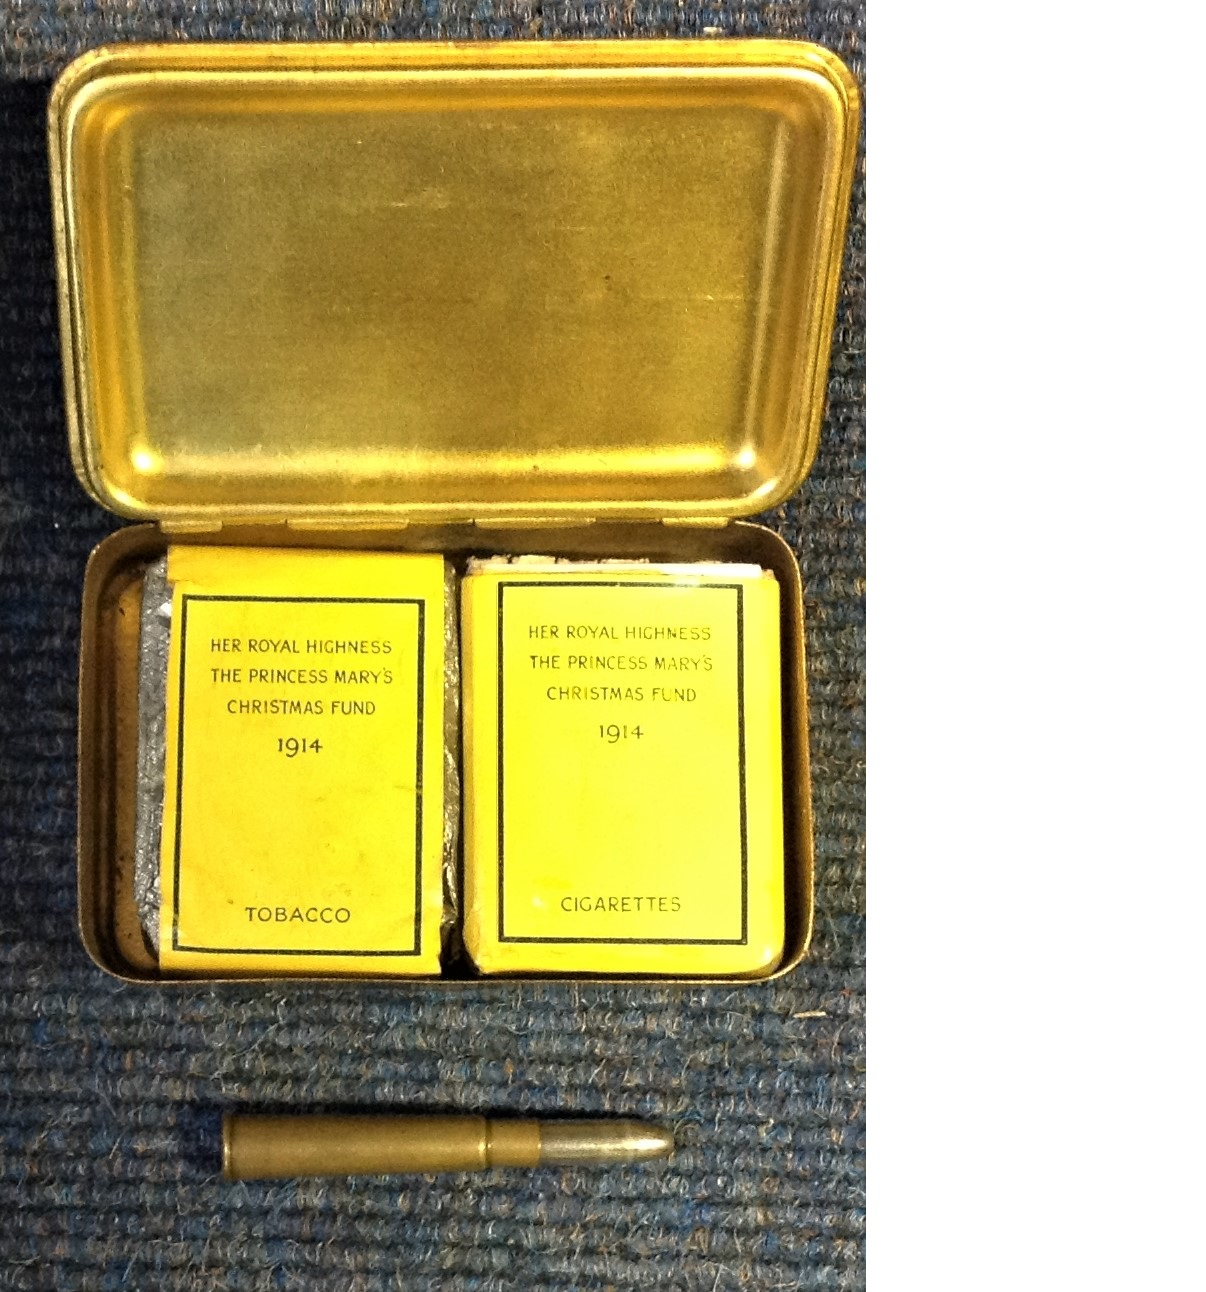 Lot 44 - Princess Mary brass gift box, given to troops during WWI in 1914. Rare with complete original